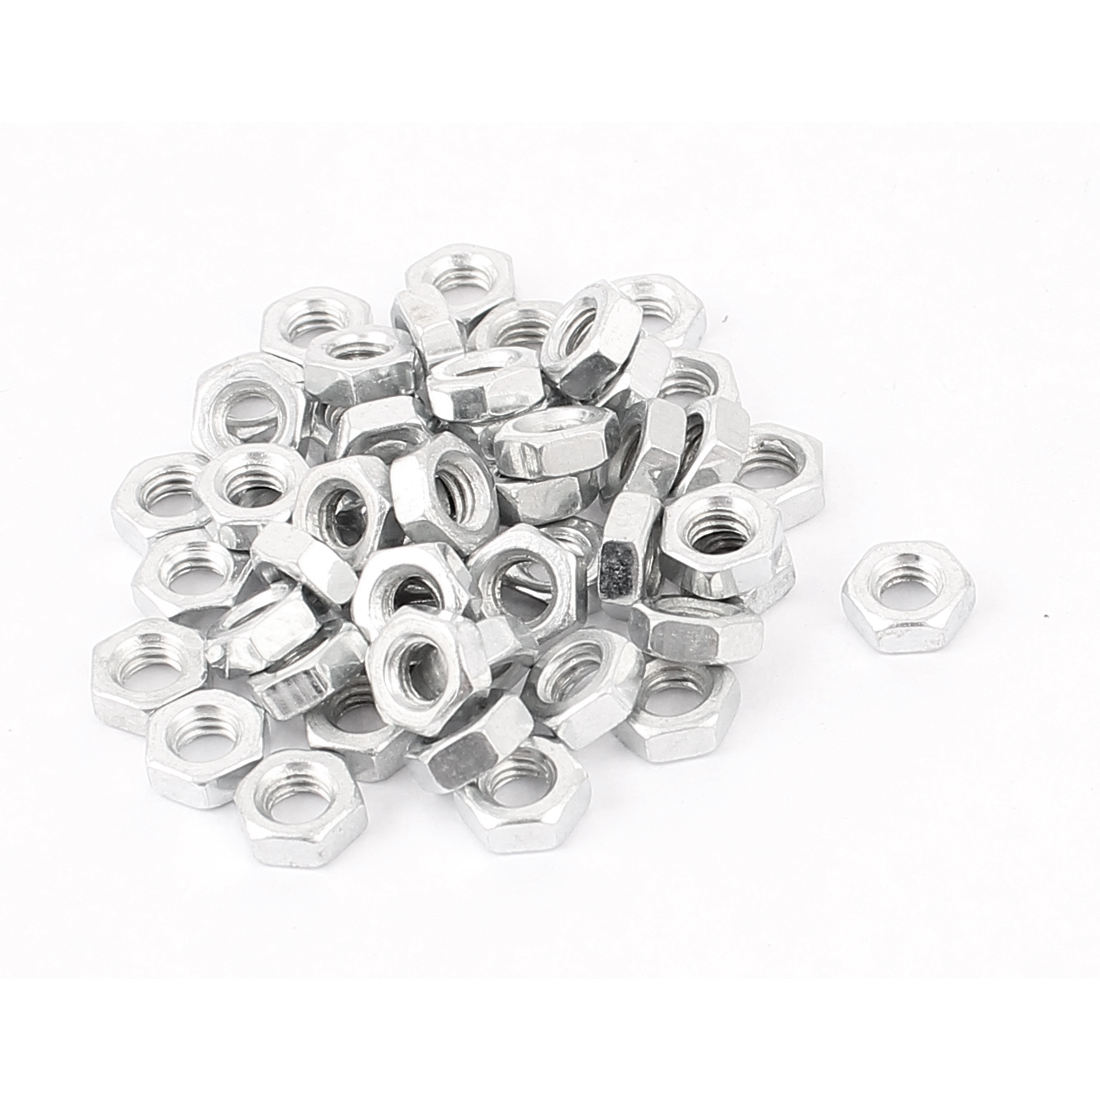 50pcs M3 Female Thread Metal Hex Nut Fastener Silver Tone